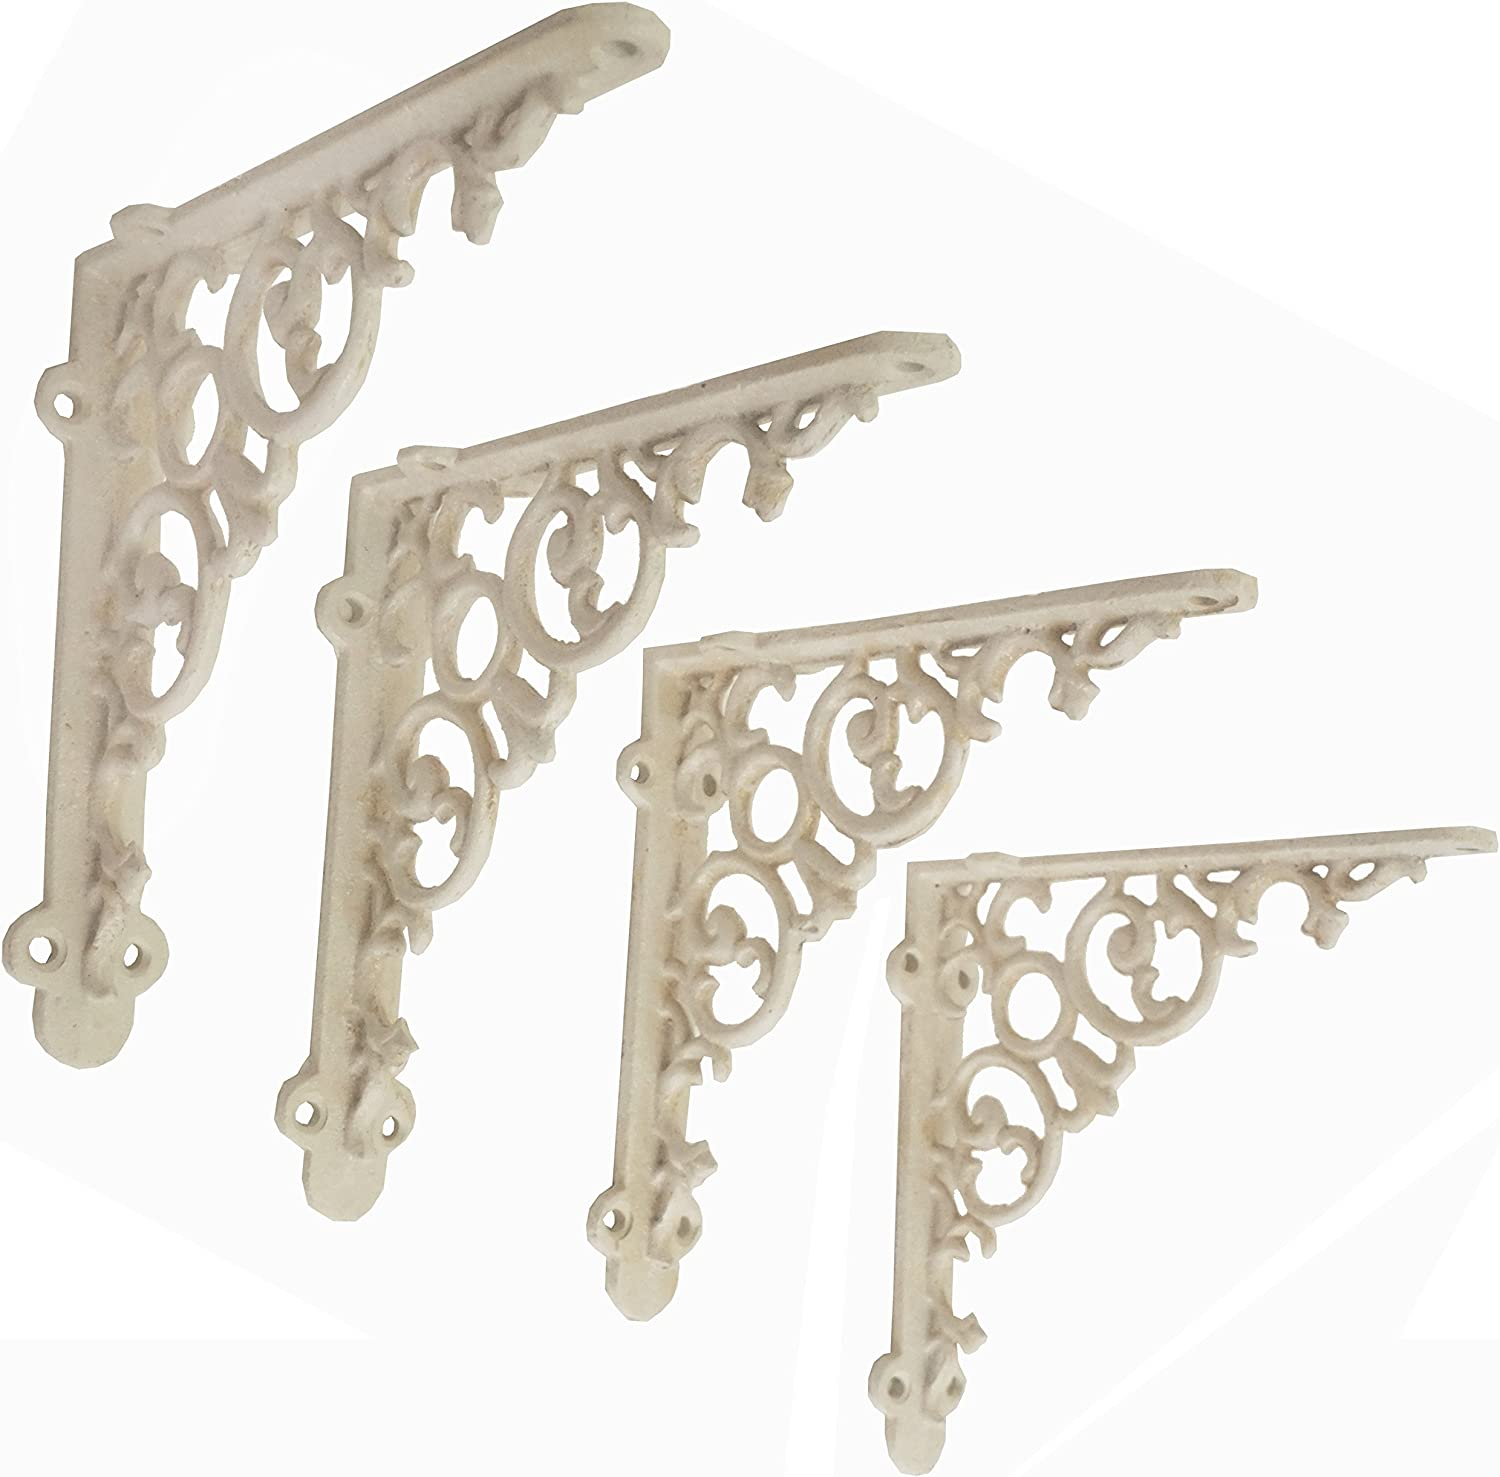 4 pairs of small Victorian scrolled cast iron brackets 4 inch wall shelf bracket